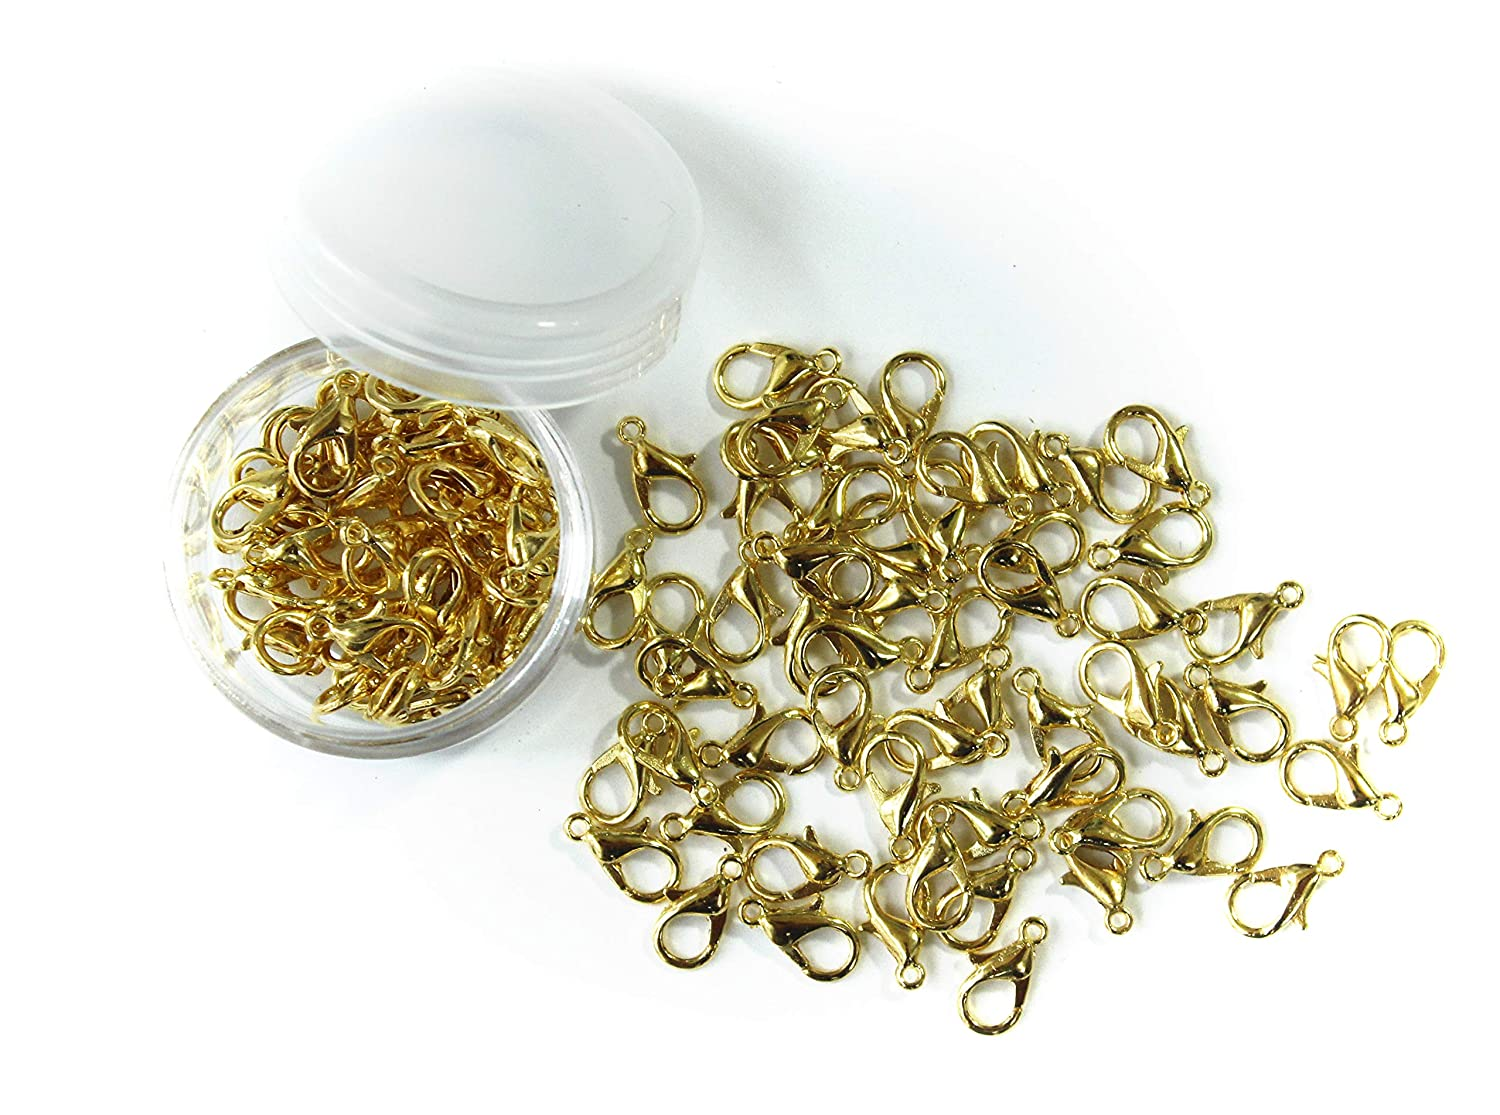 ALL in ONE 12x6mm 30g/100pcs Gold Plated Lobster Claw Clasps with 15 Gram Storage Box (Gold)